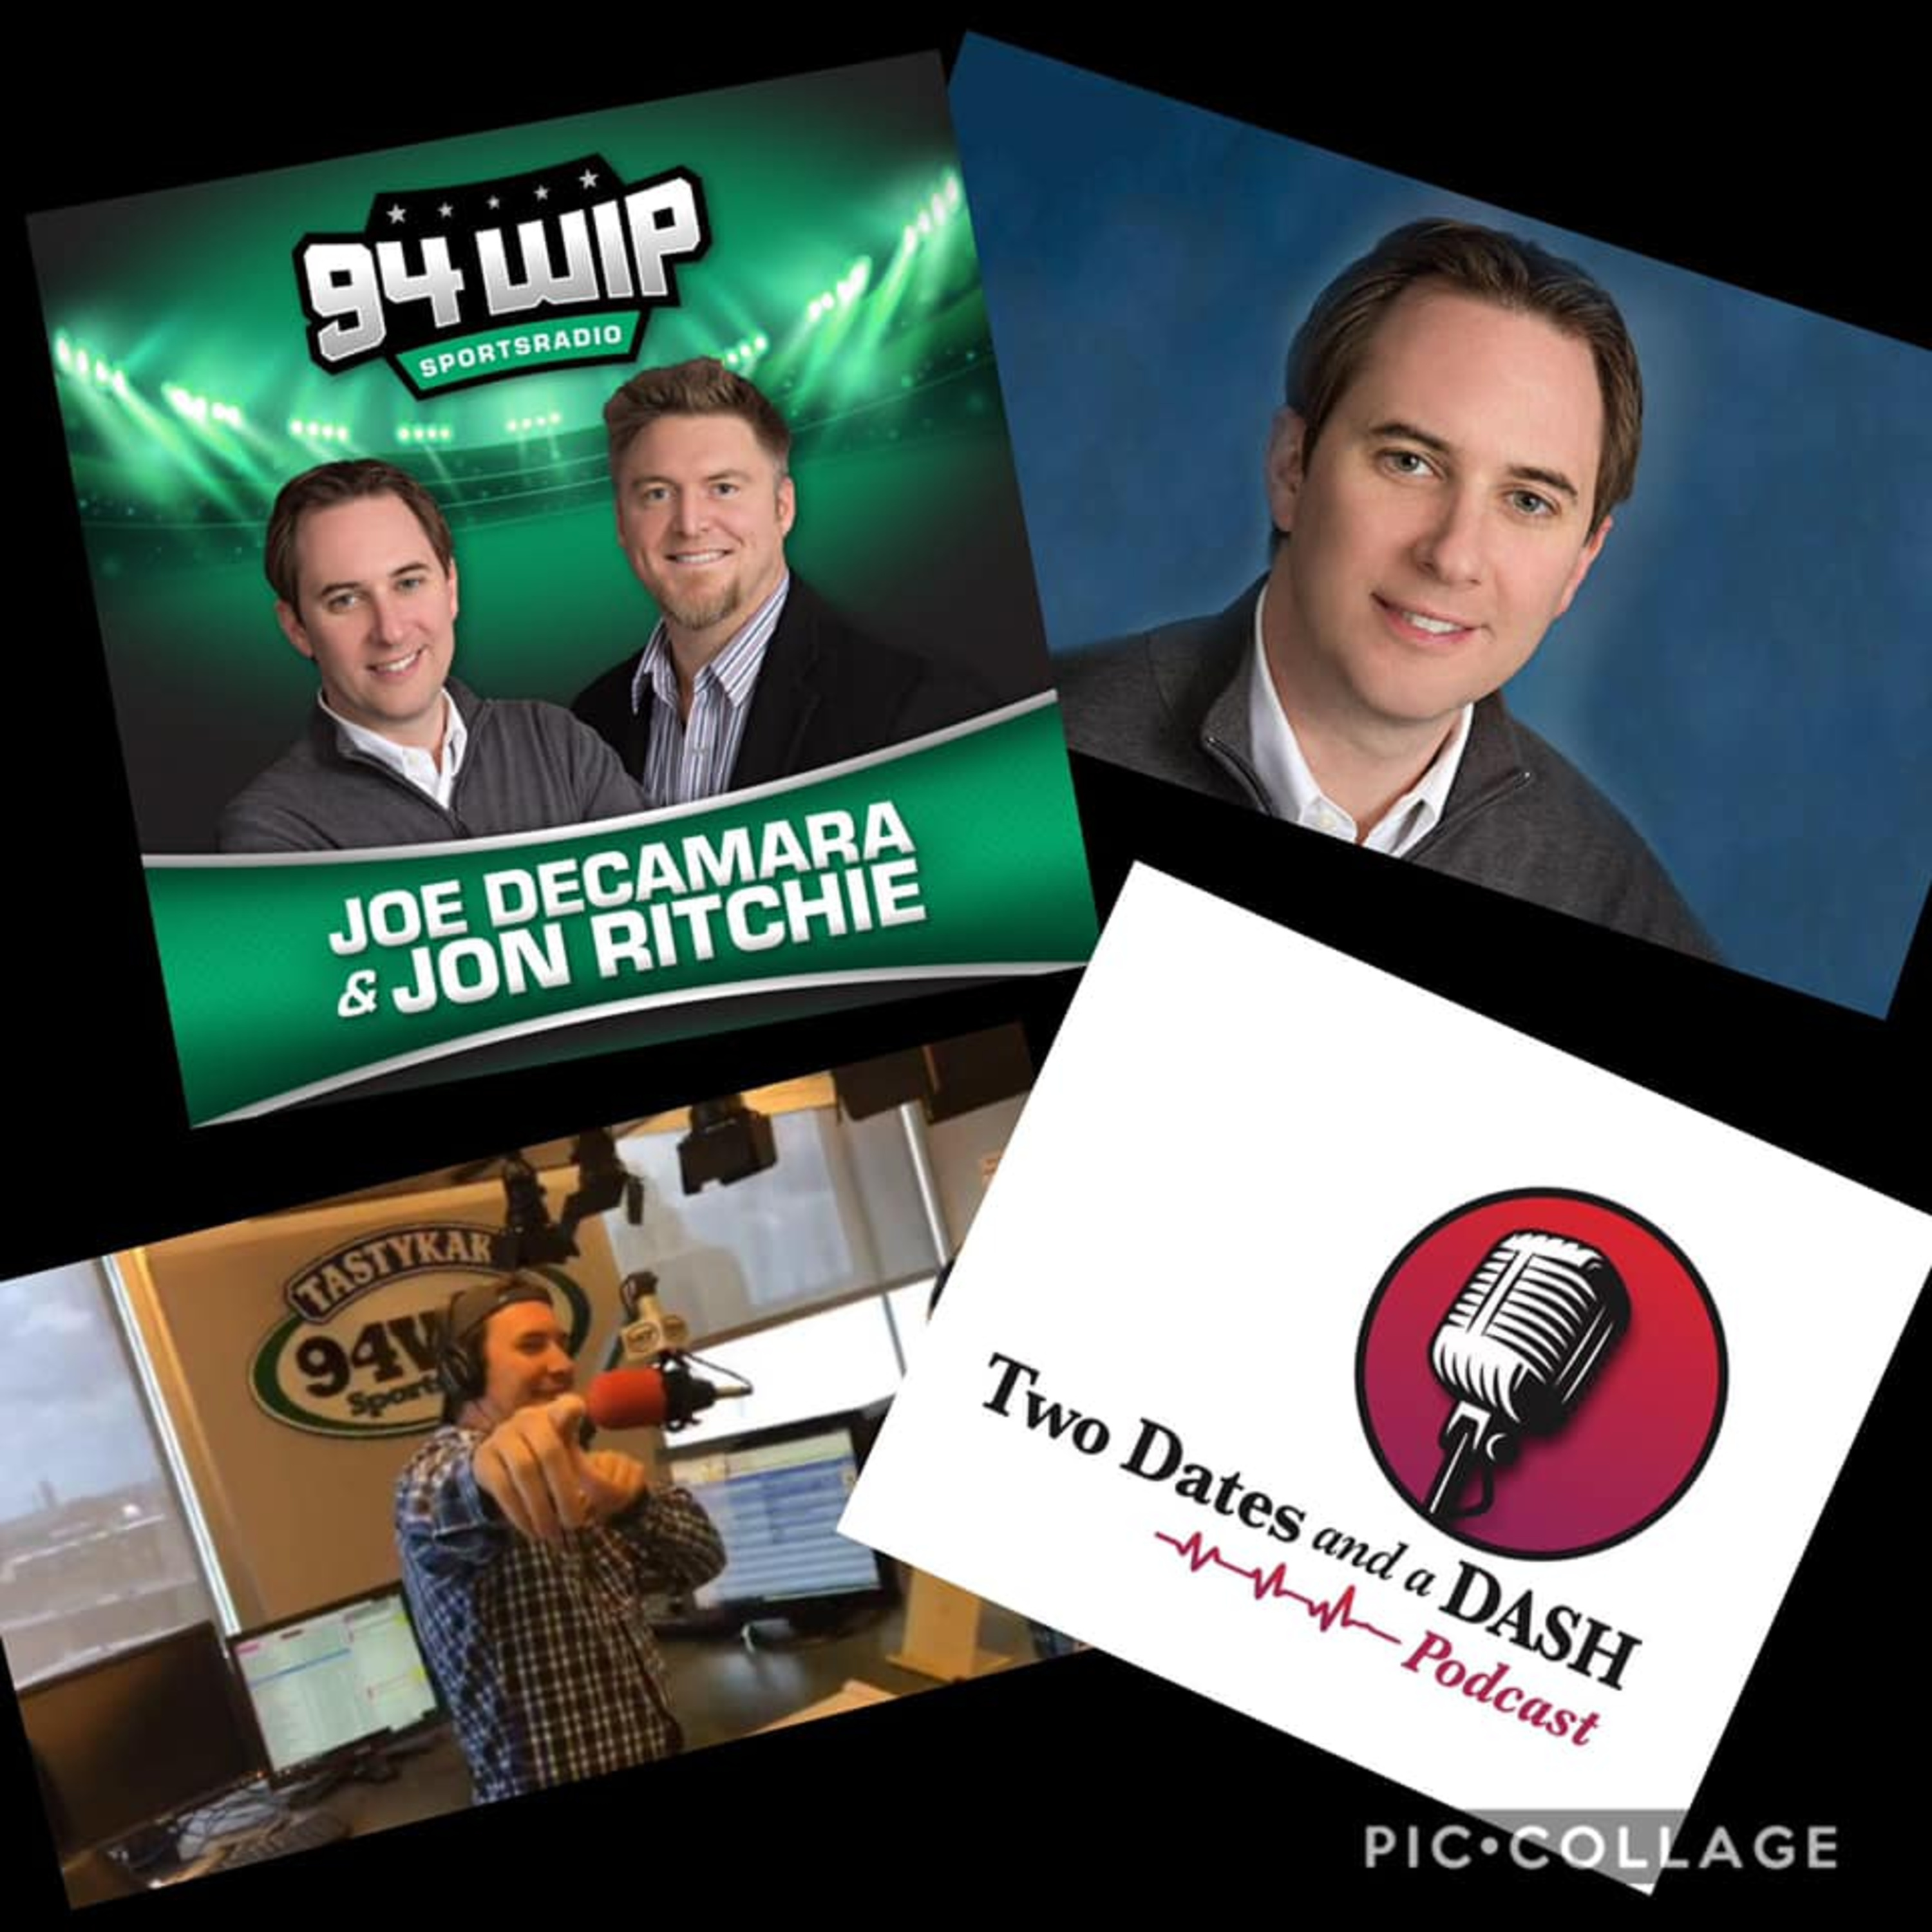 Two Dates and a Dash Podcast Episode 46: Philly Sports Radio Host and renowned Philly Sports Expert, Joe DeCamara